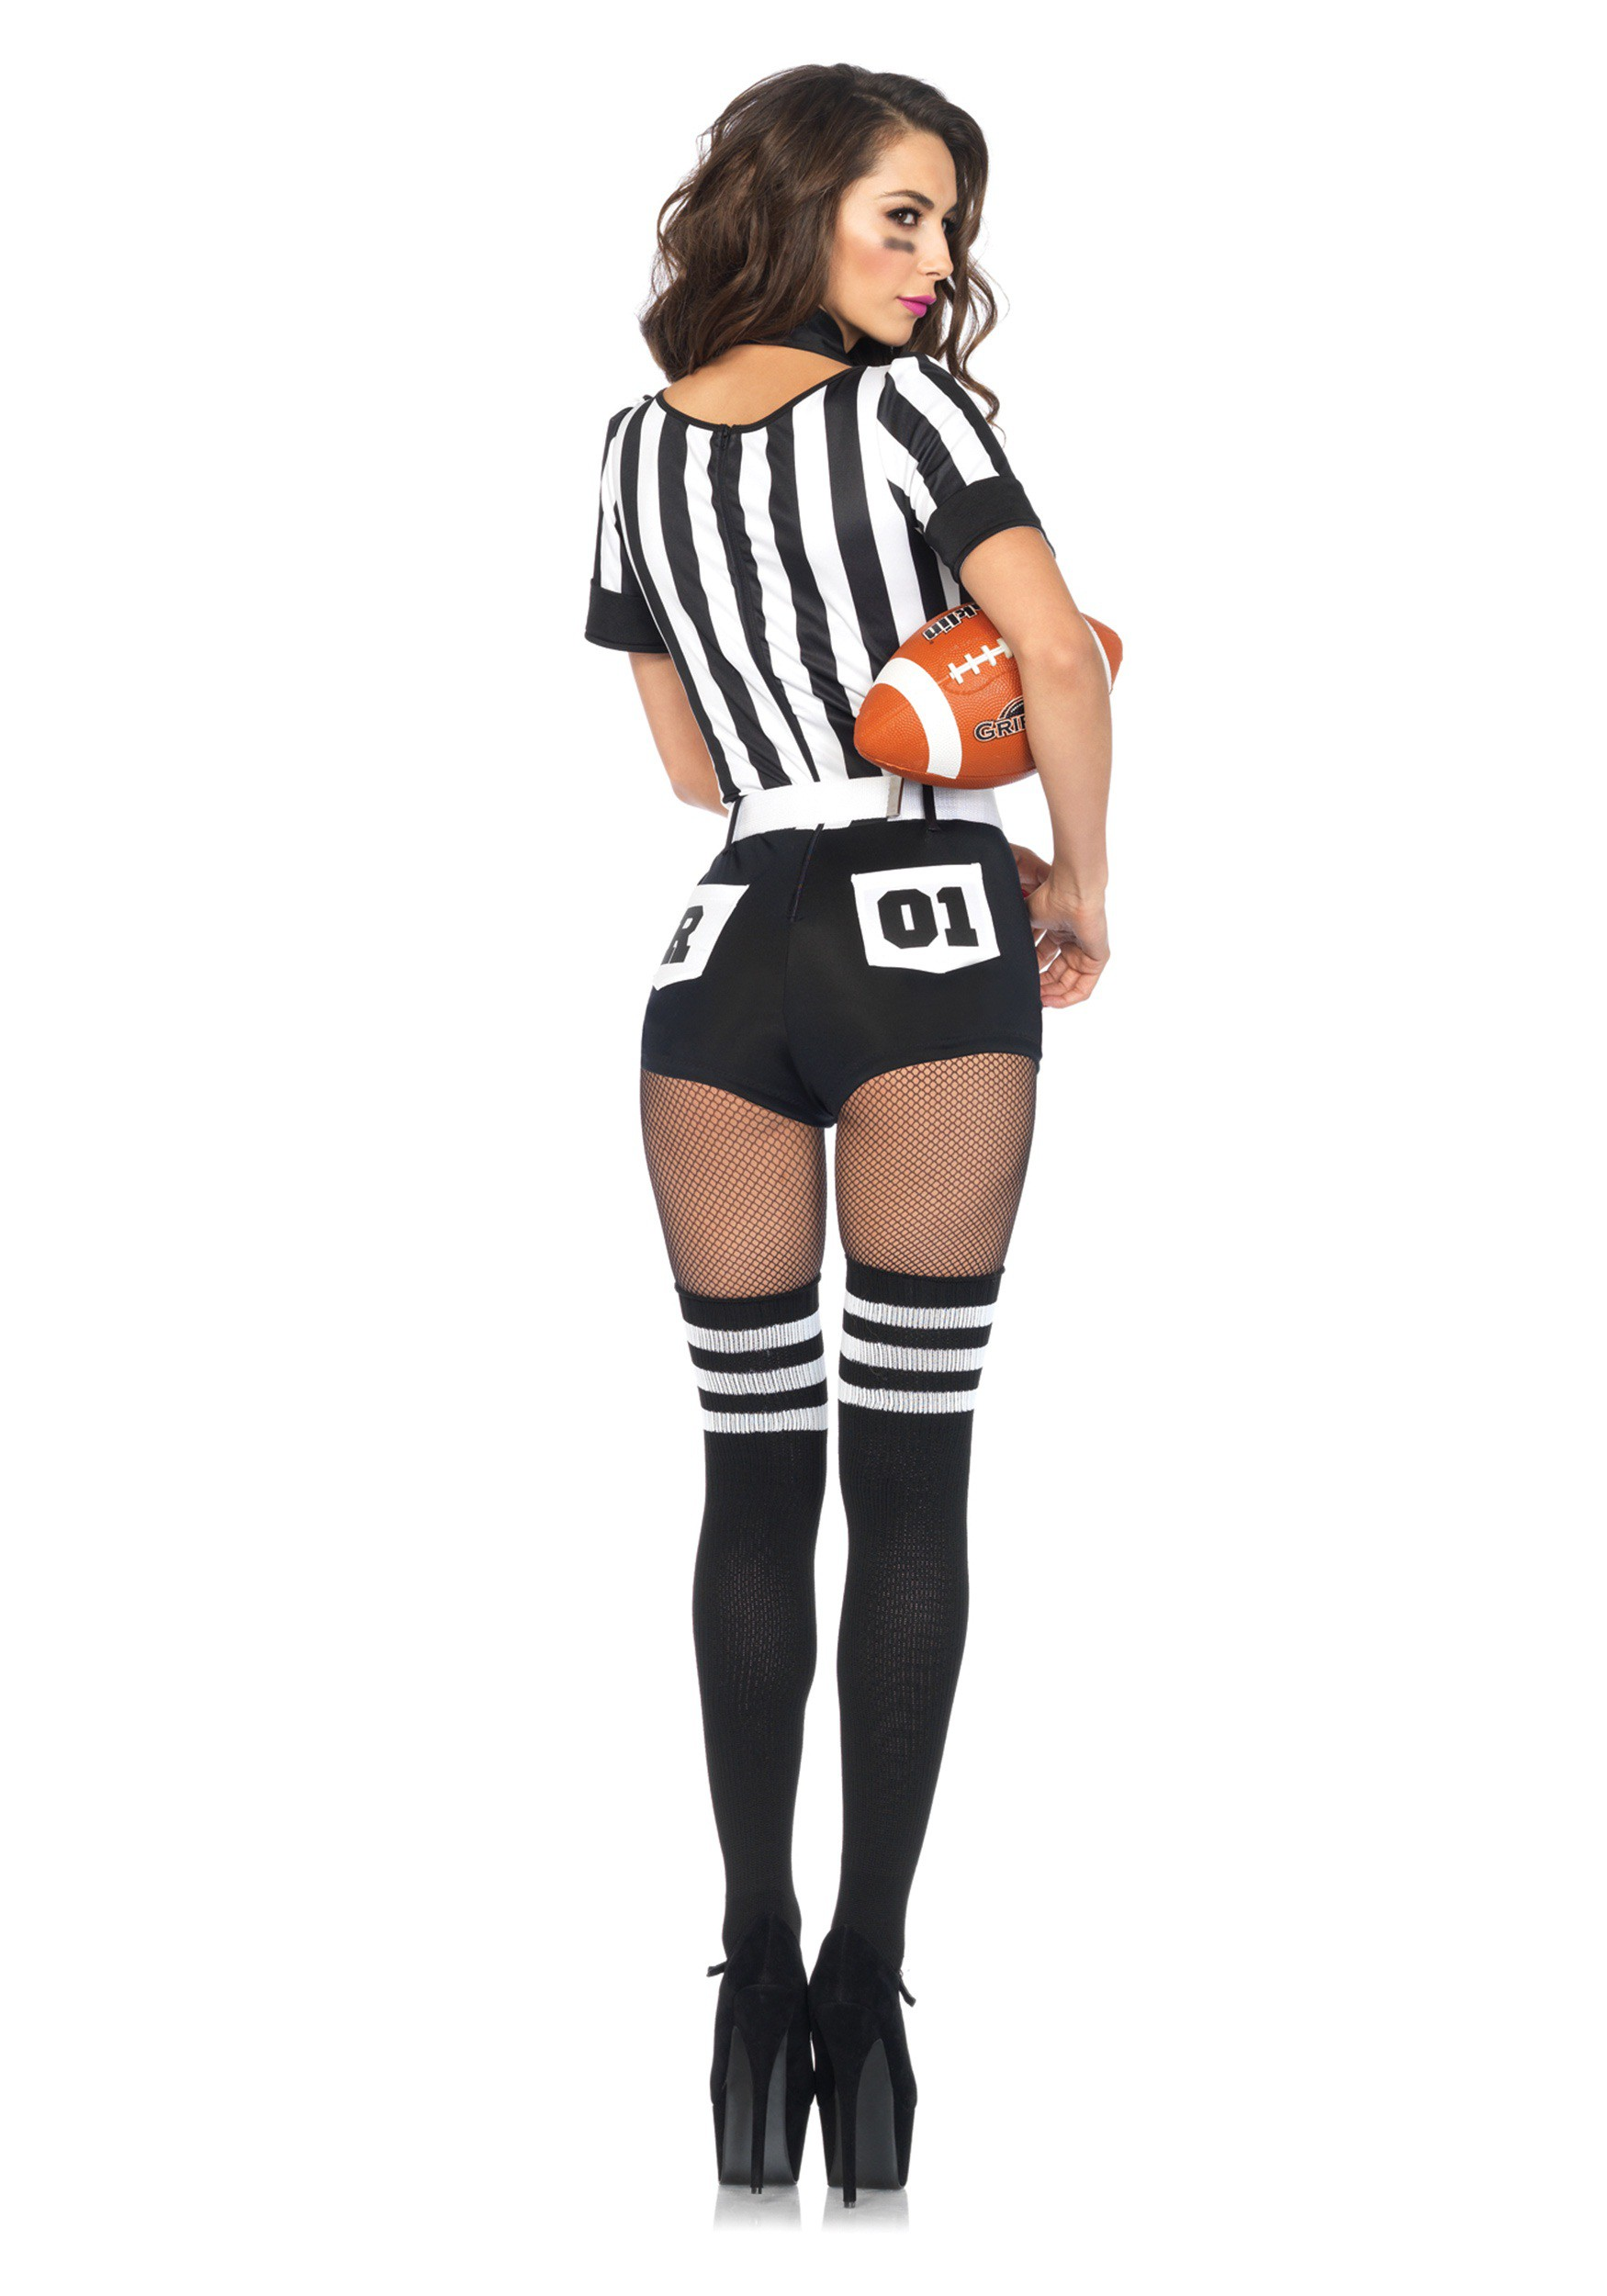 Referee outfit sexy